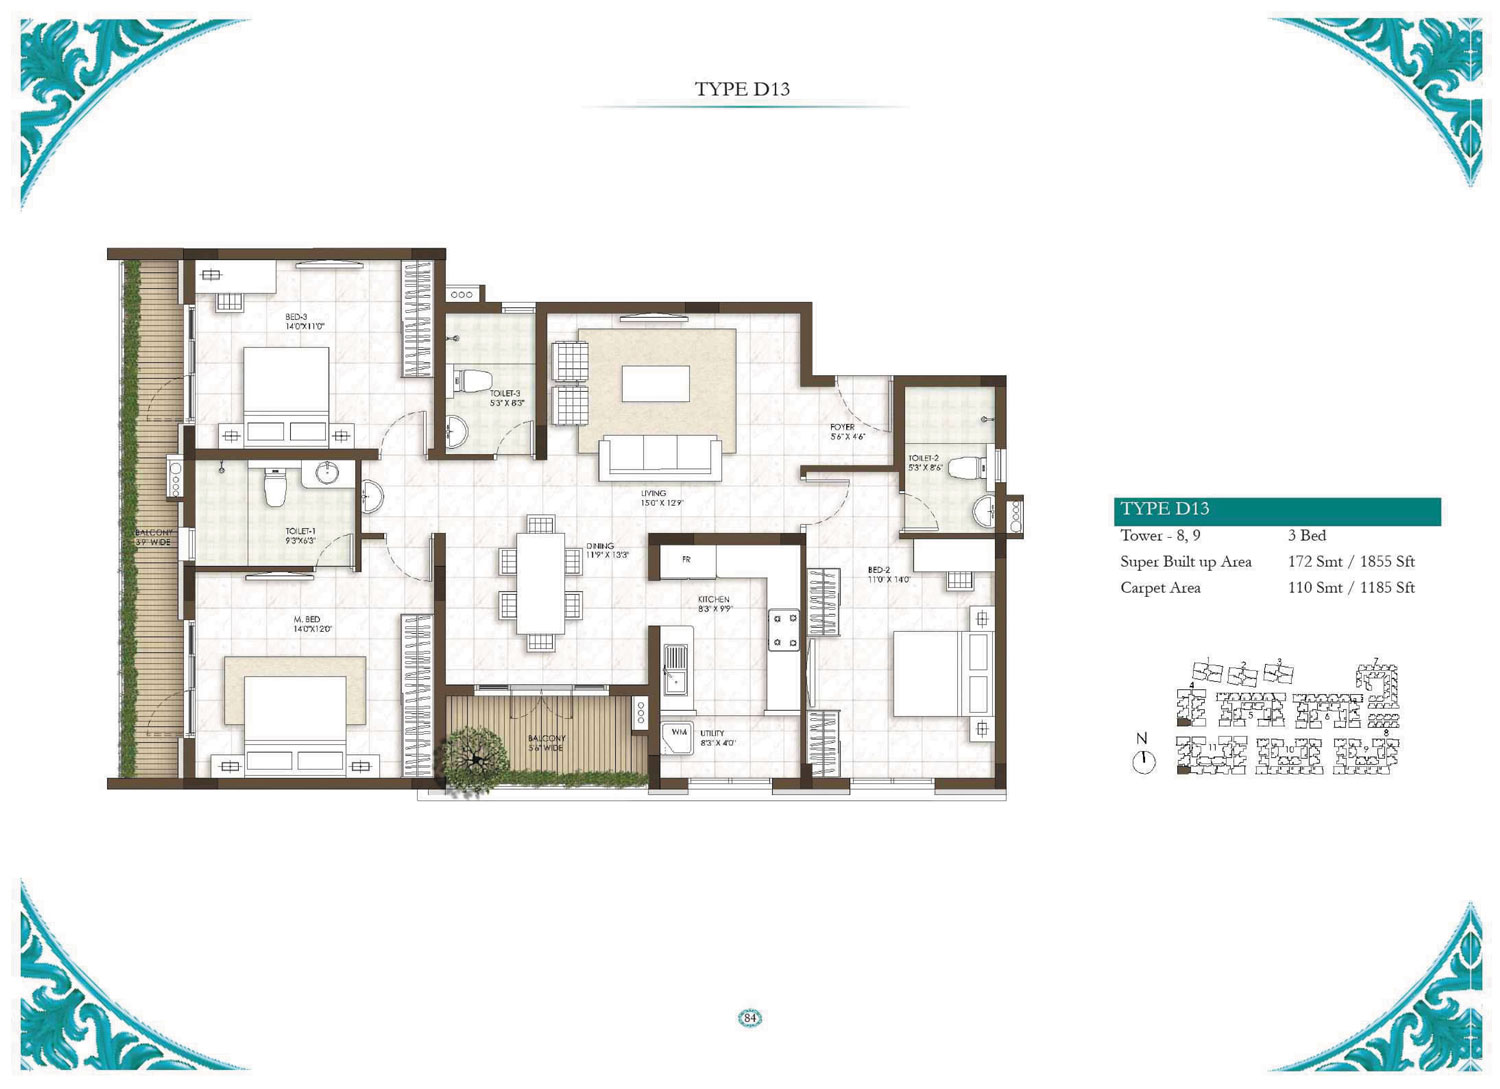 Type D13 - 3 Bed - 1855 Sq Ft